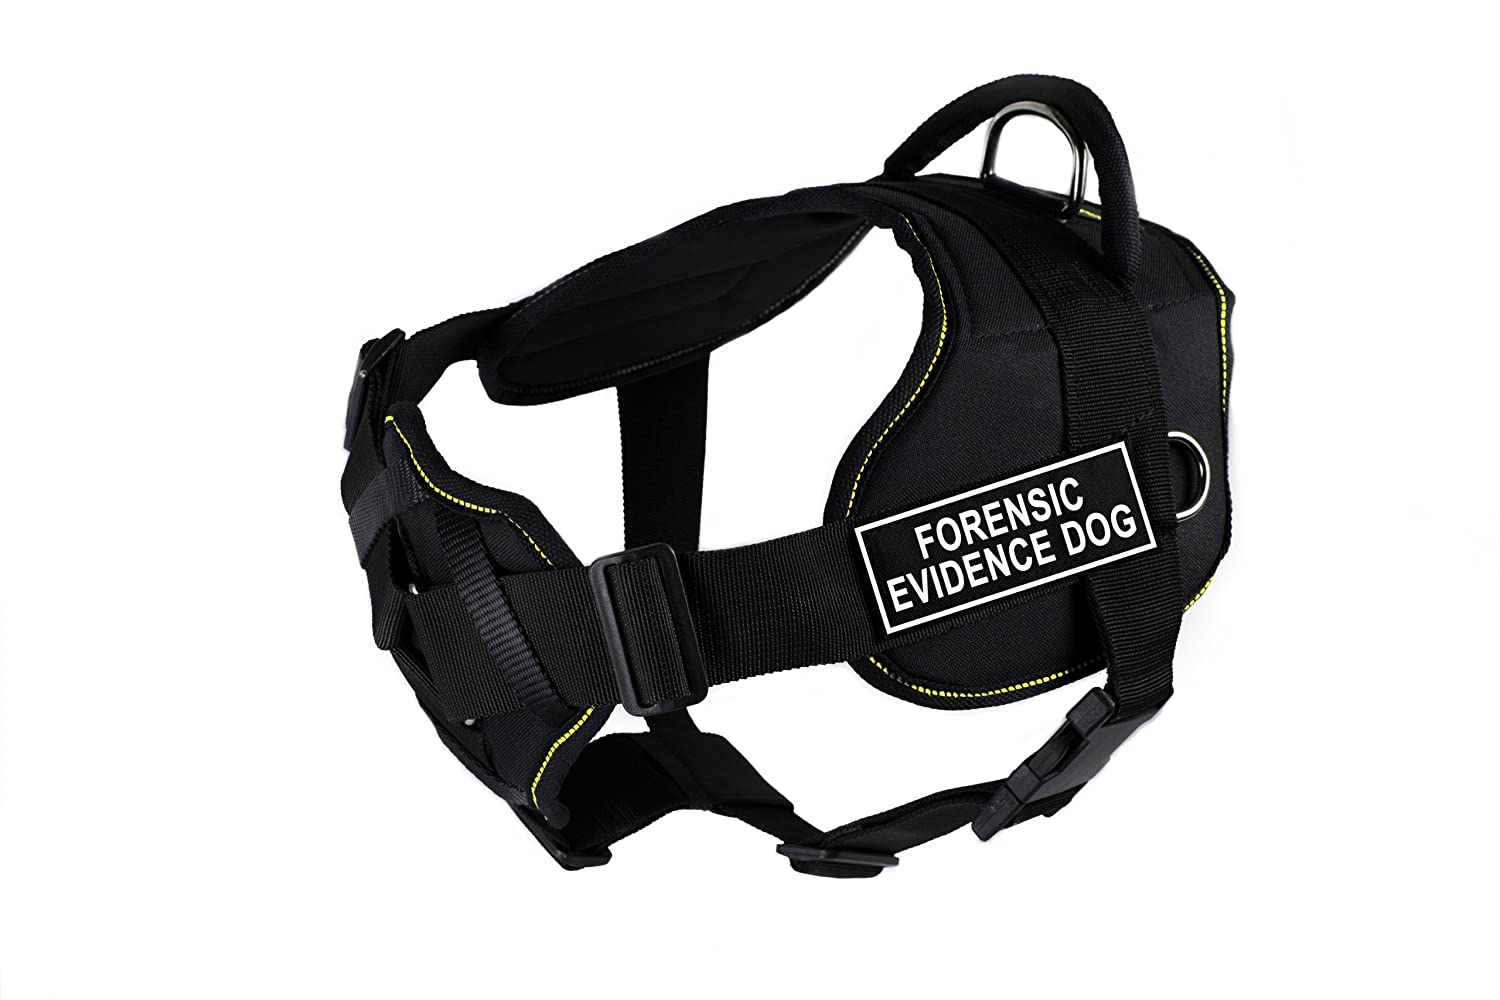 Dean & Tyler Fun Works Forensic Evidence Dog Harness with Padded Chest Piece, Small, Fits Girth Size  22-Inch to 27-Inch, Black with Yellow Trim